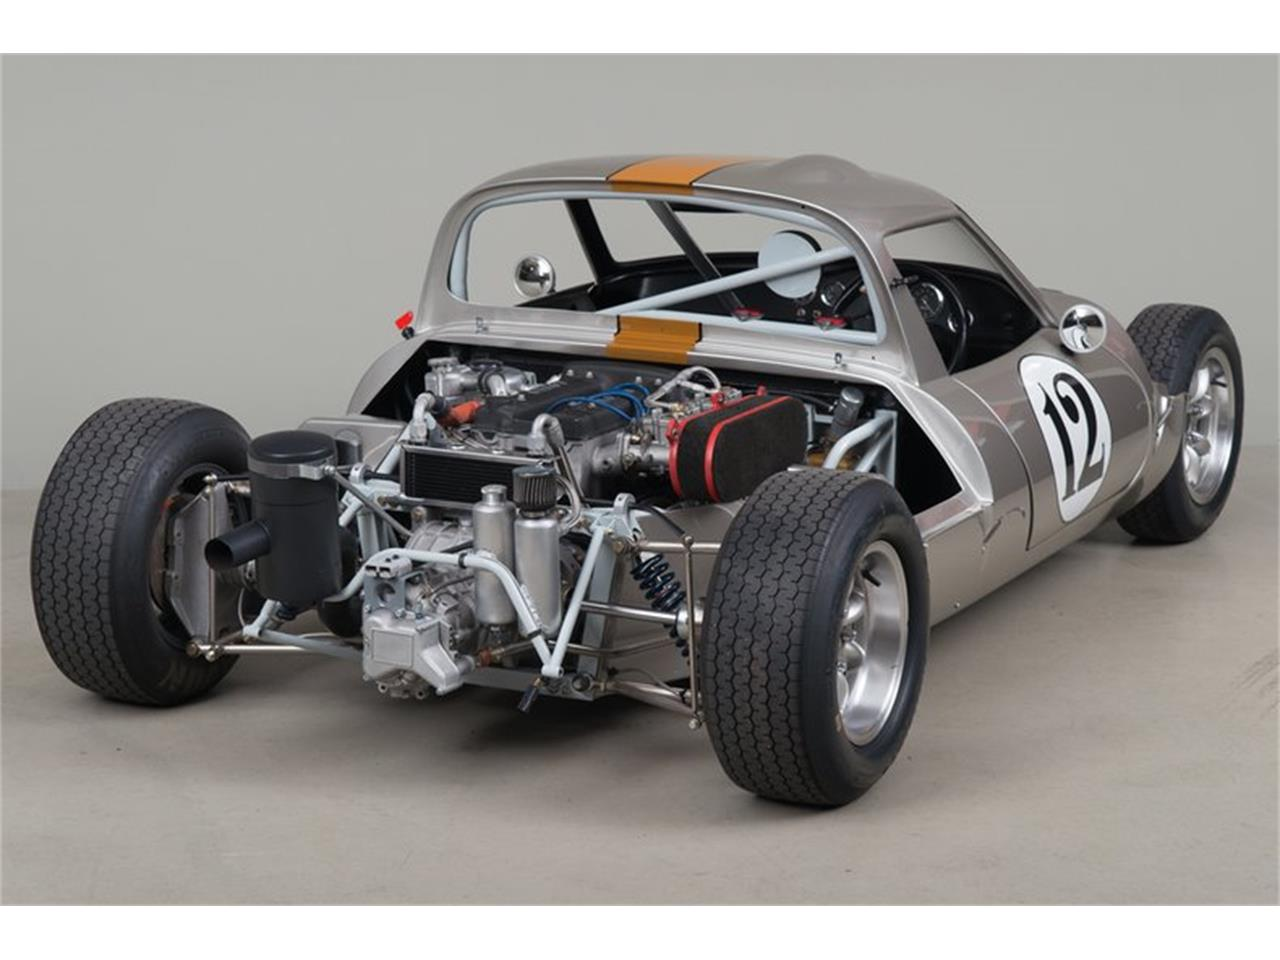 1967 Ginetta G12 for sale in Scotts Valley, CA – photo 32